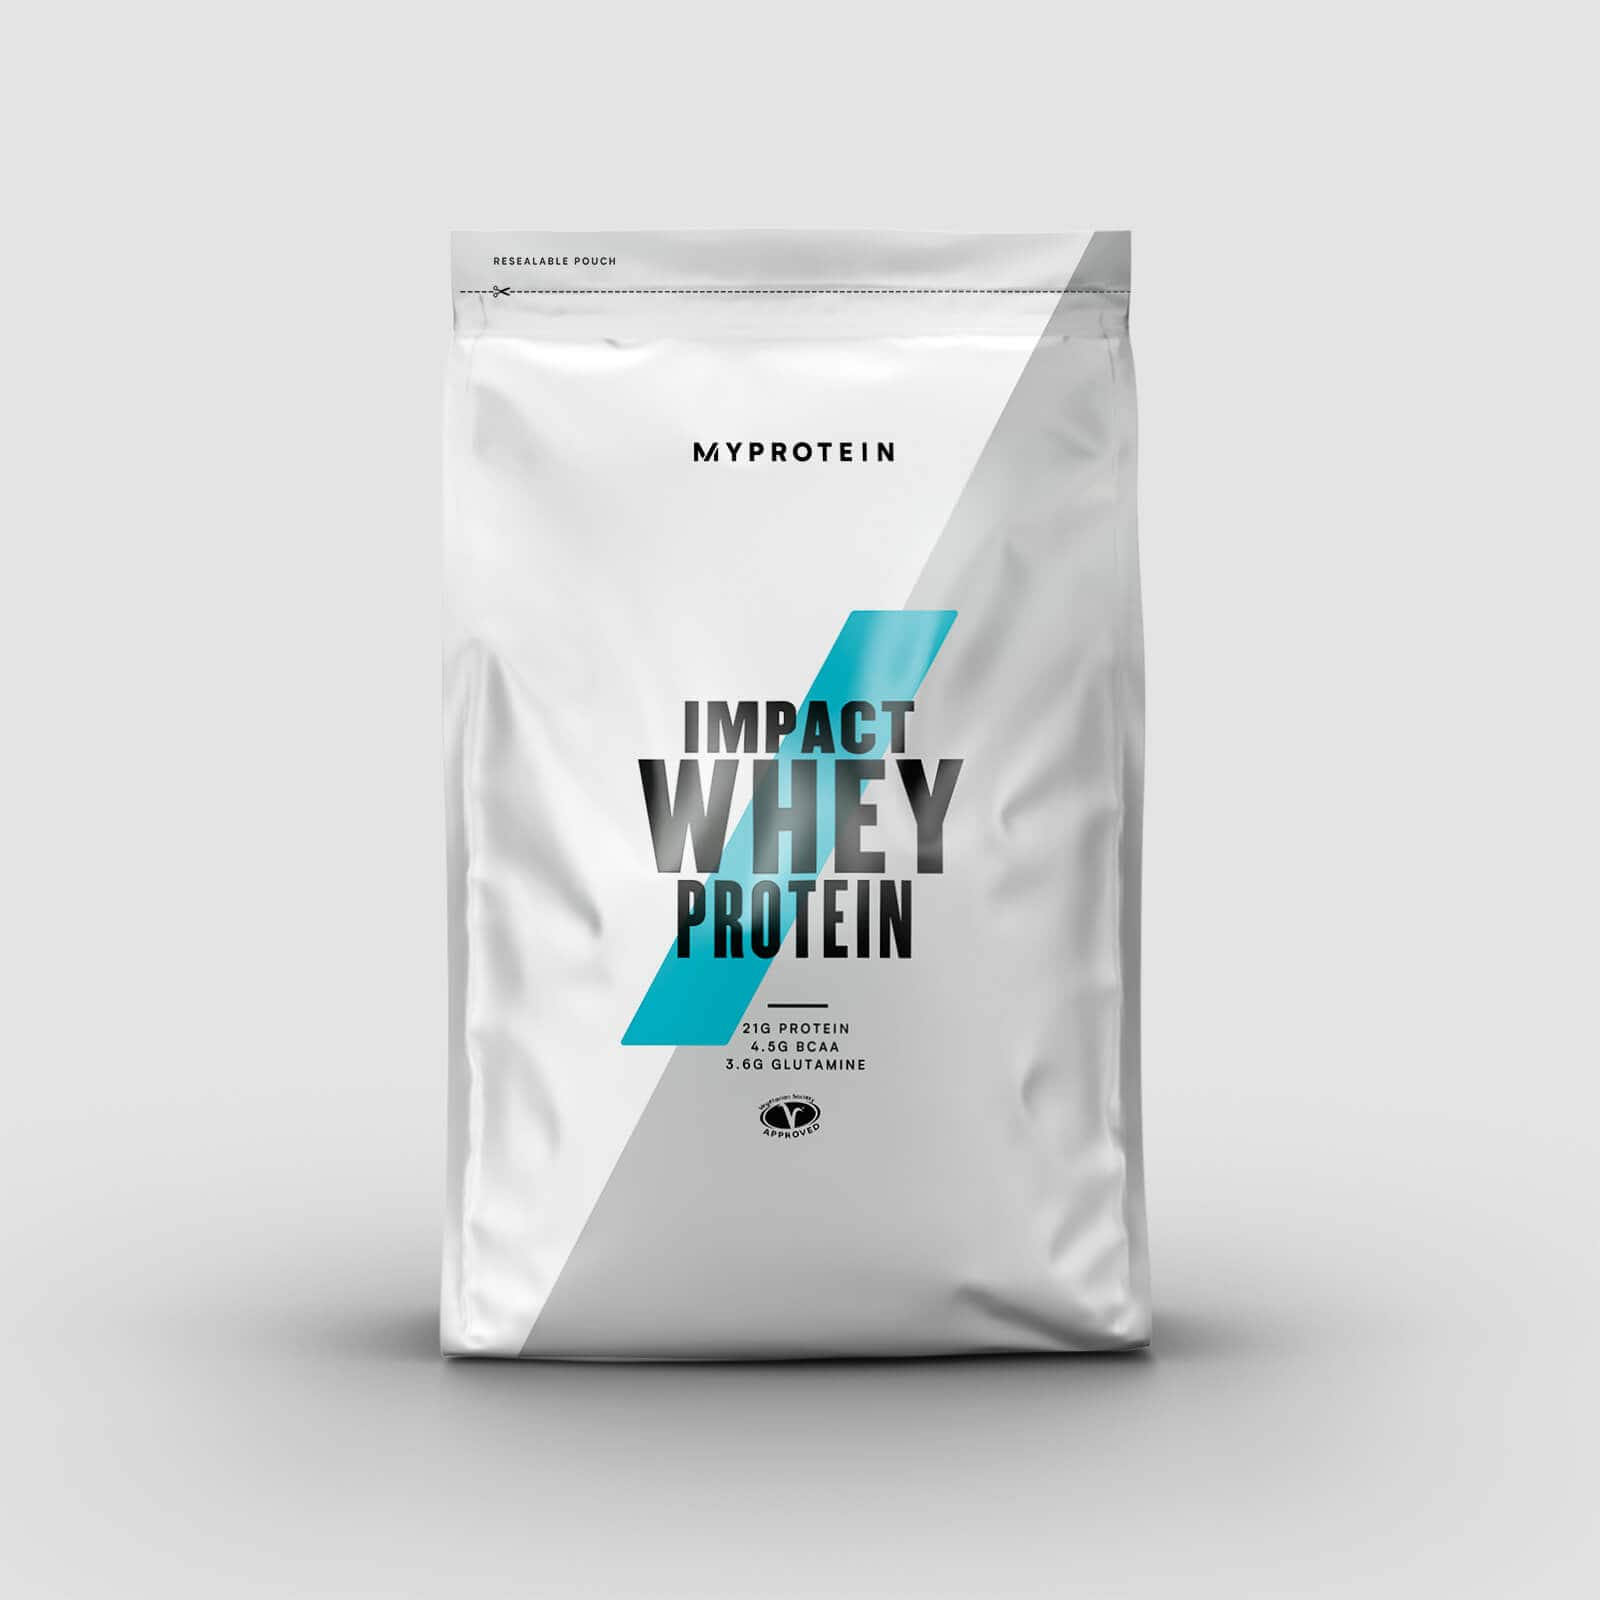 11-lbs Myprotein Impact Whey Protein (Various Flavors)